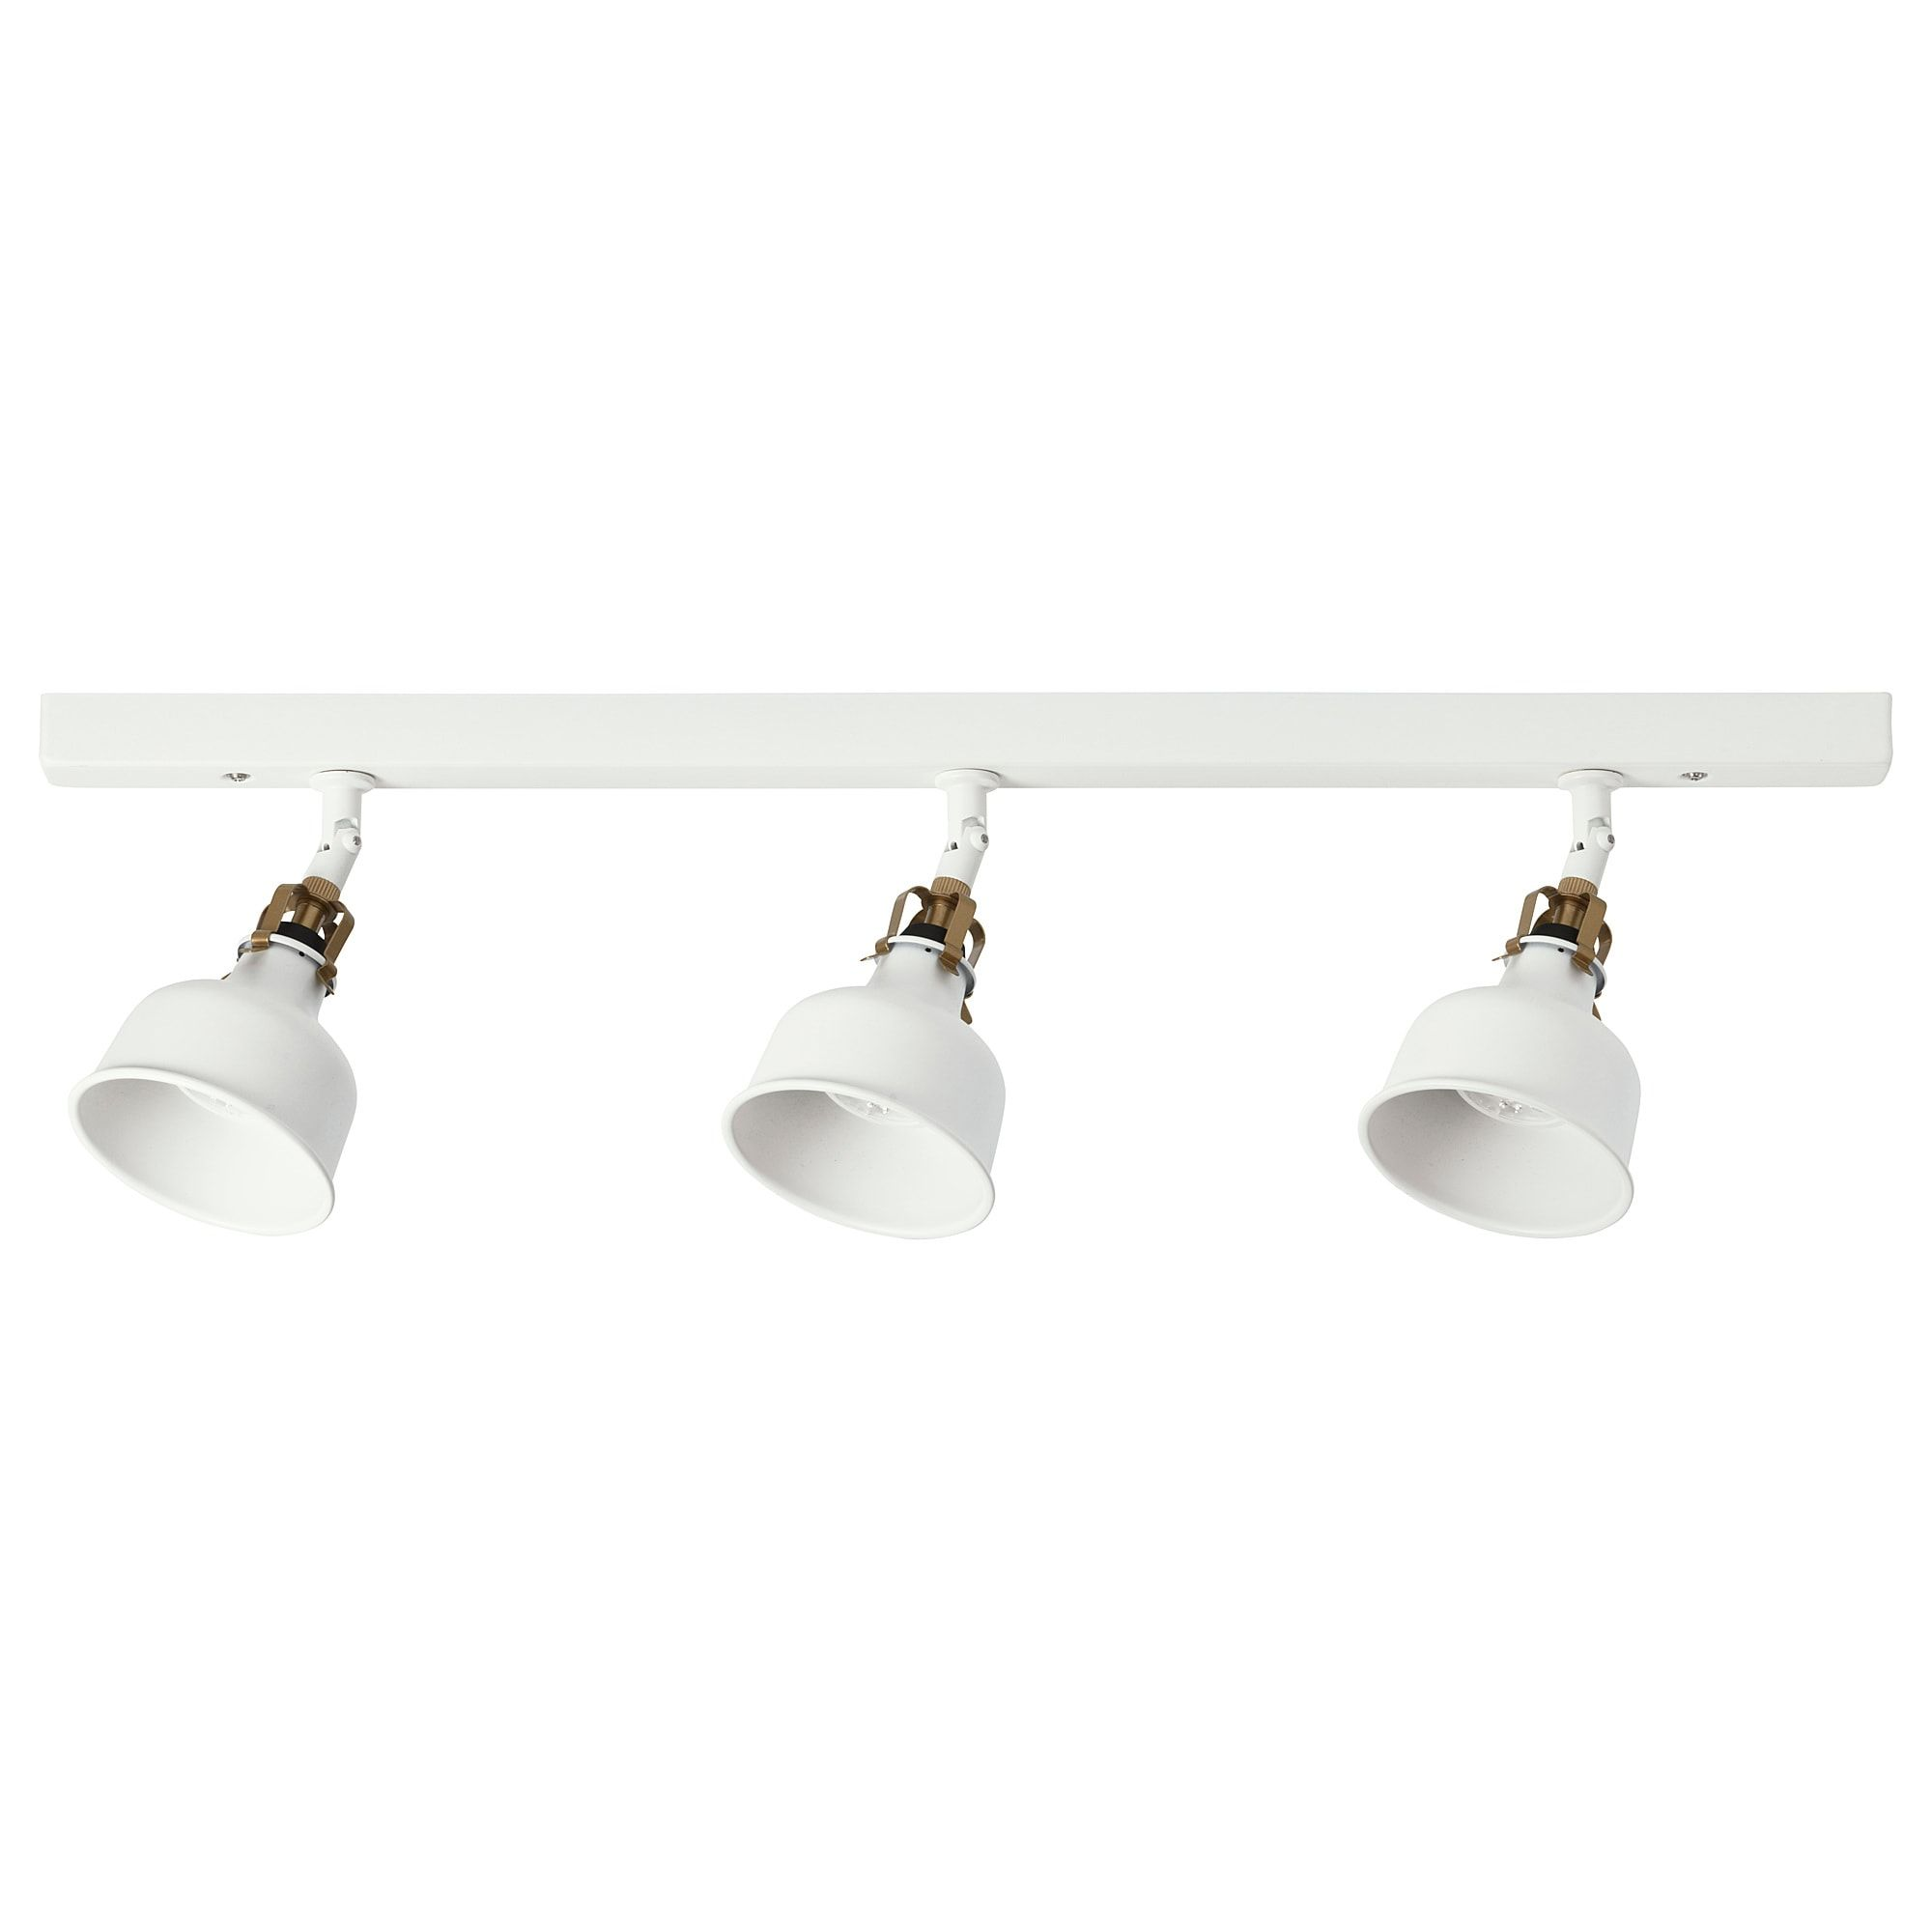 Ikea Ranarp Ceiling Track 3 Spotlights White Off White You Can Easily Direct The Light To Different Places Ikea Ranarp Ceiling Lights Ceiling Spotlights